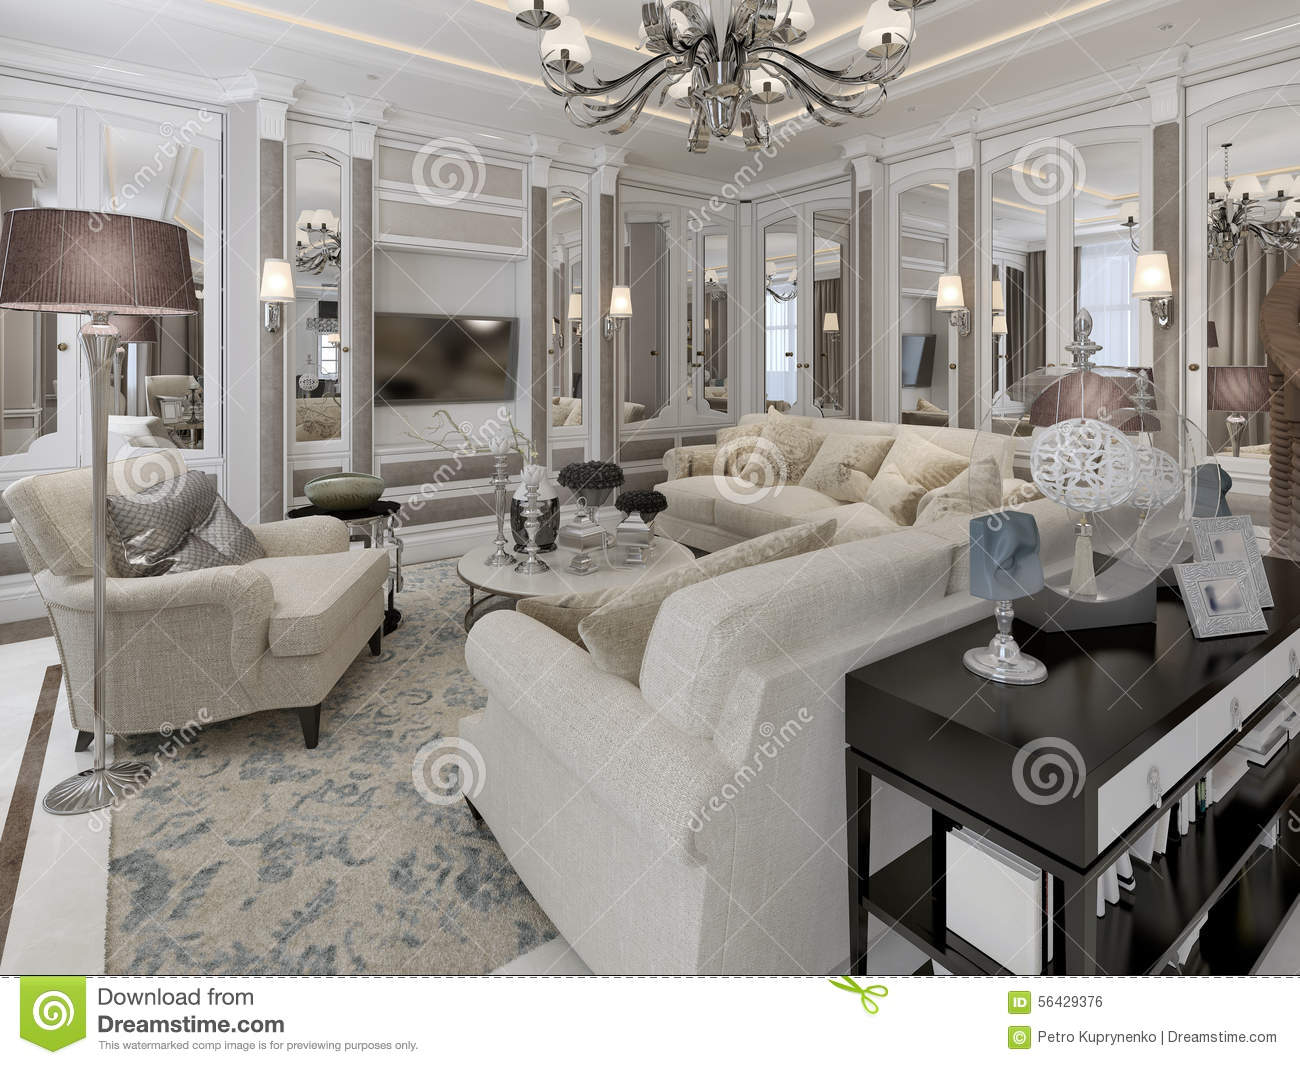 Salon de style d 39 art d co illustration stock image 56429376 for Art et decoration salon